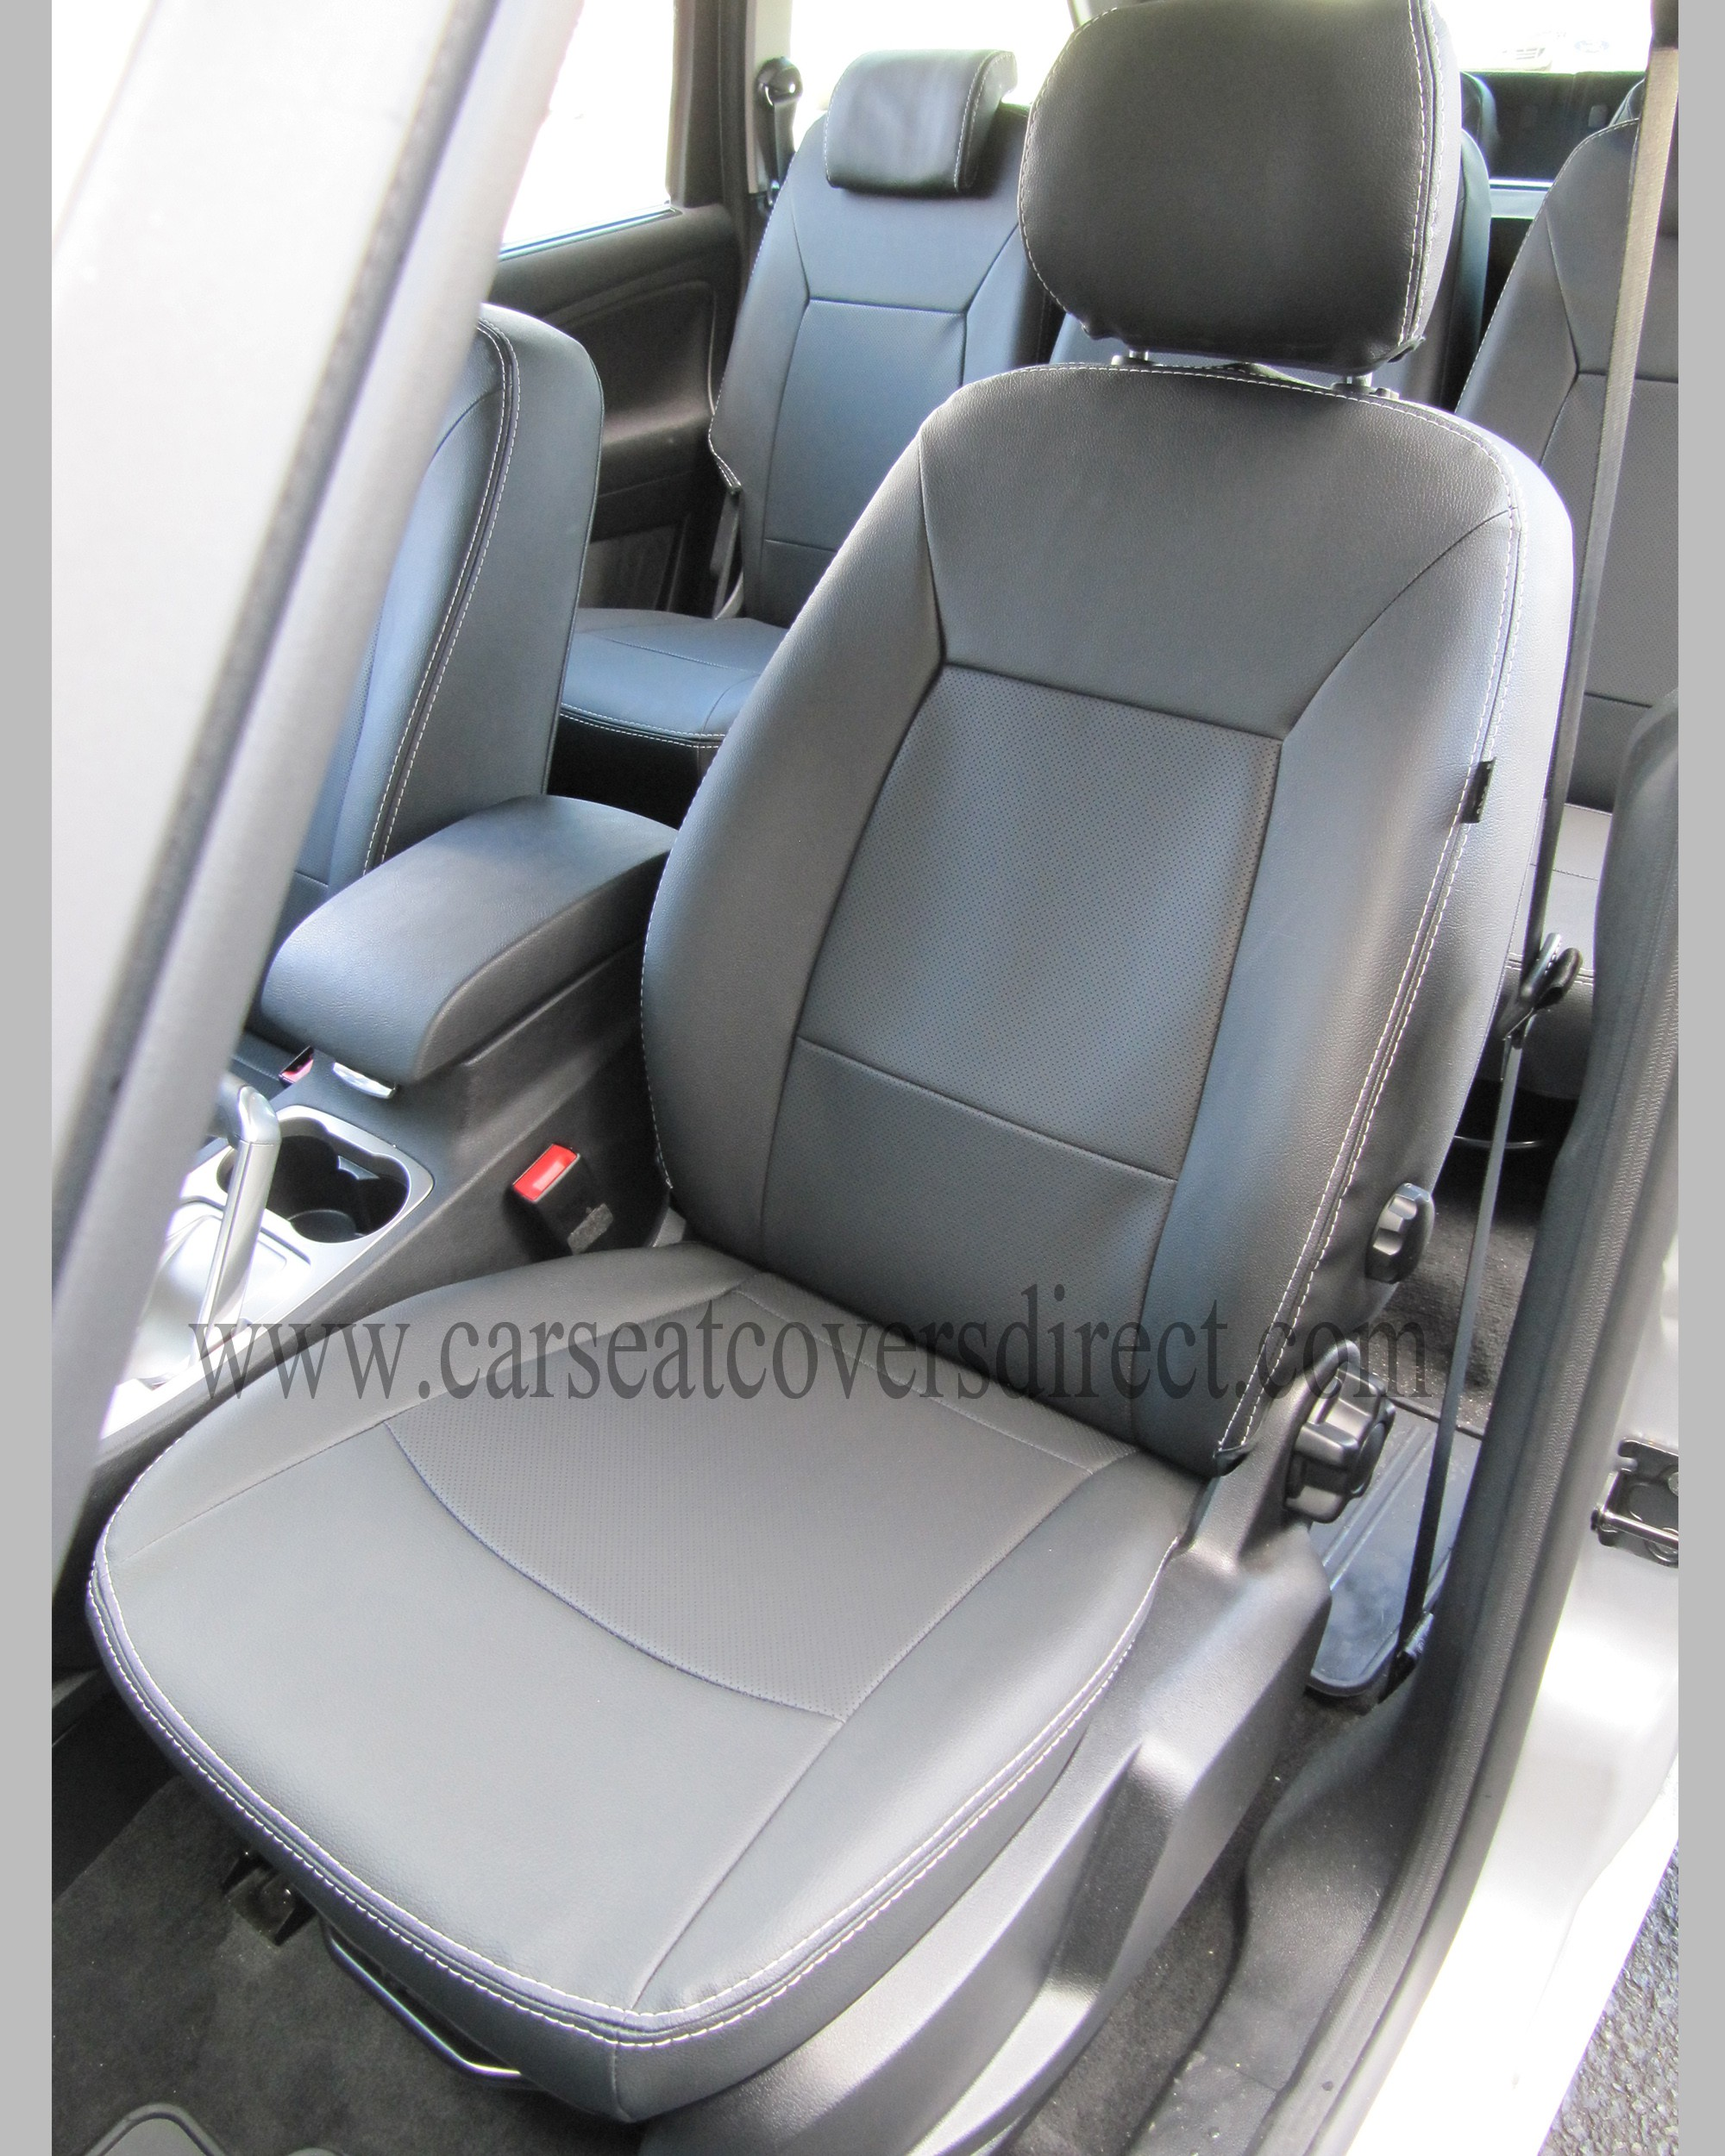 Ford Galaxy Nd Gen Foam Backed Seat Covers